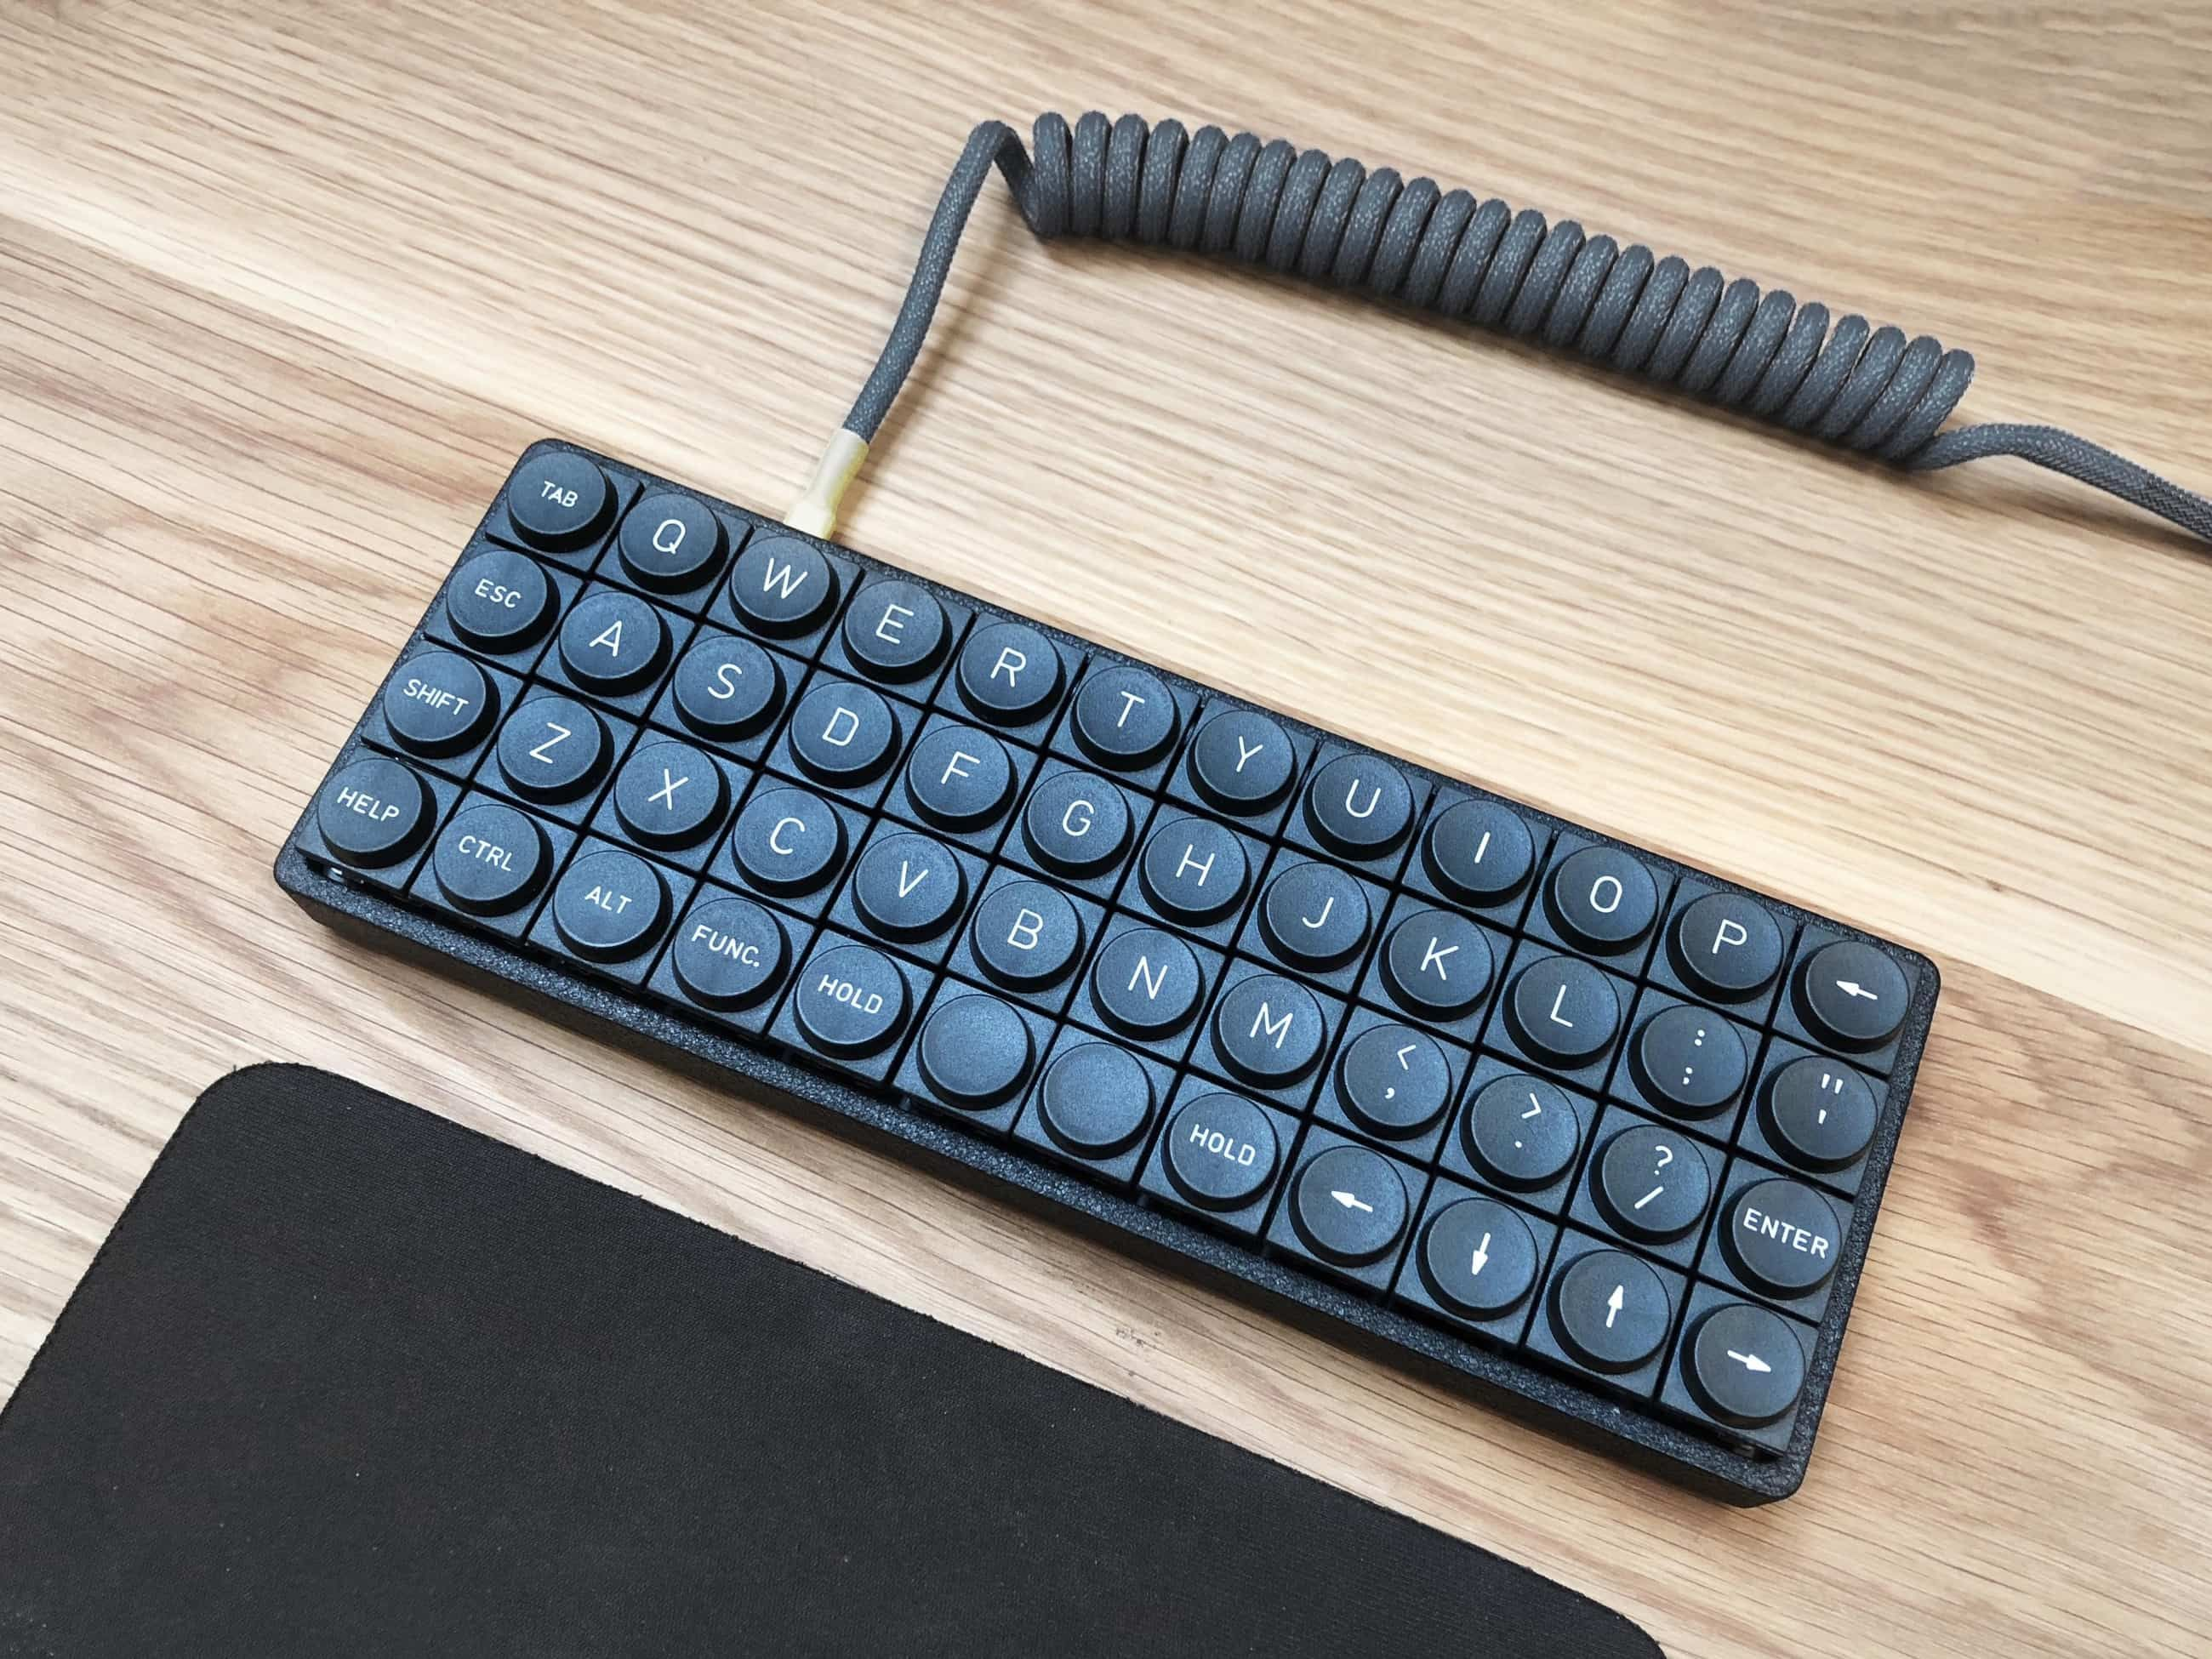 Planck Keyboard Teletype Z Series Delvin Ortholinear Round Keys